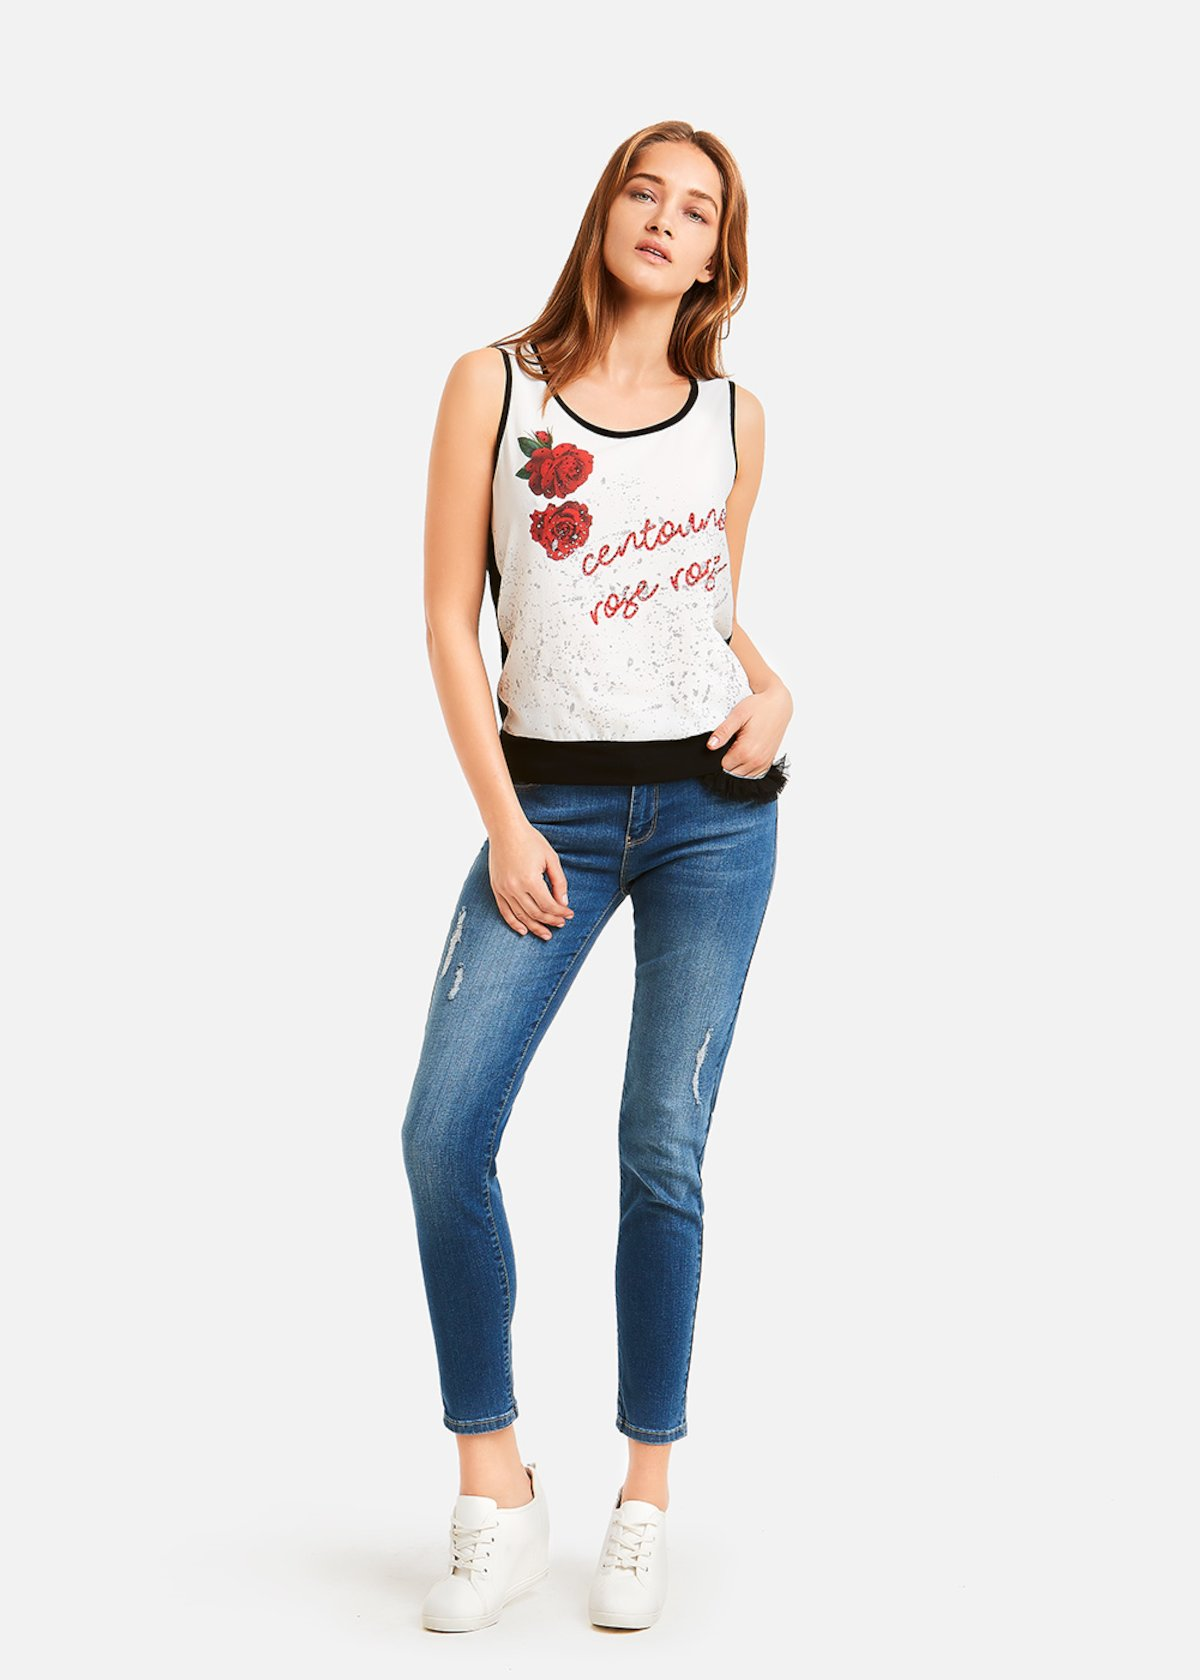 Top Timothy red roses print - Black / White